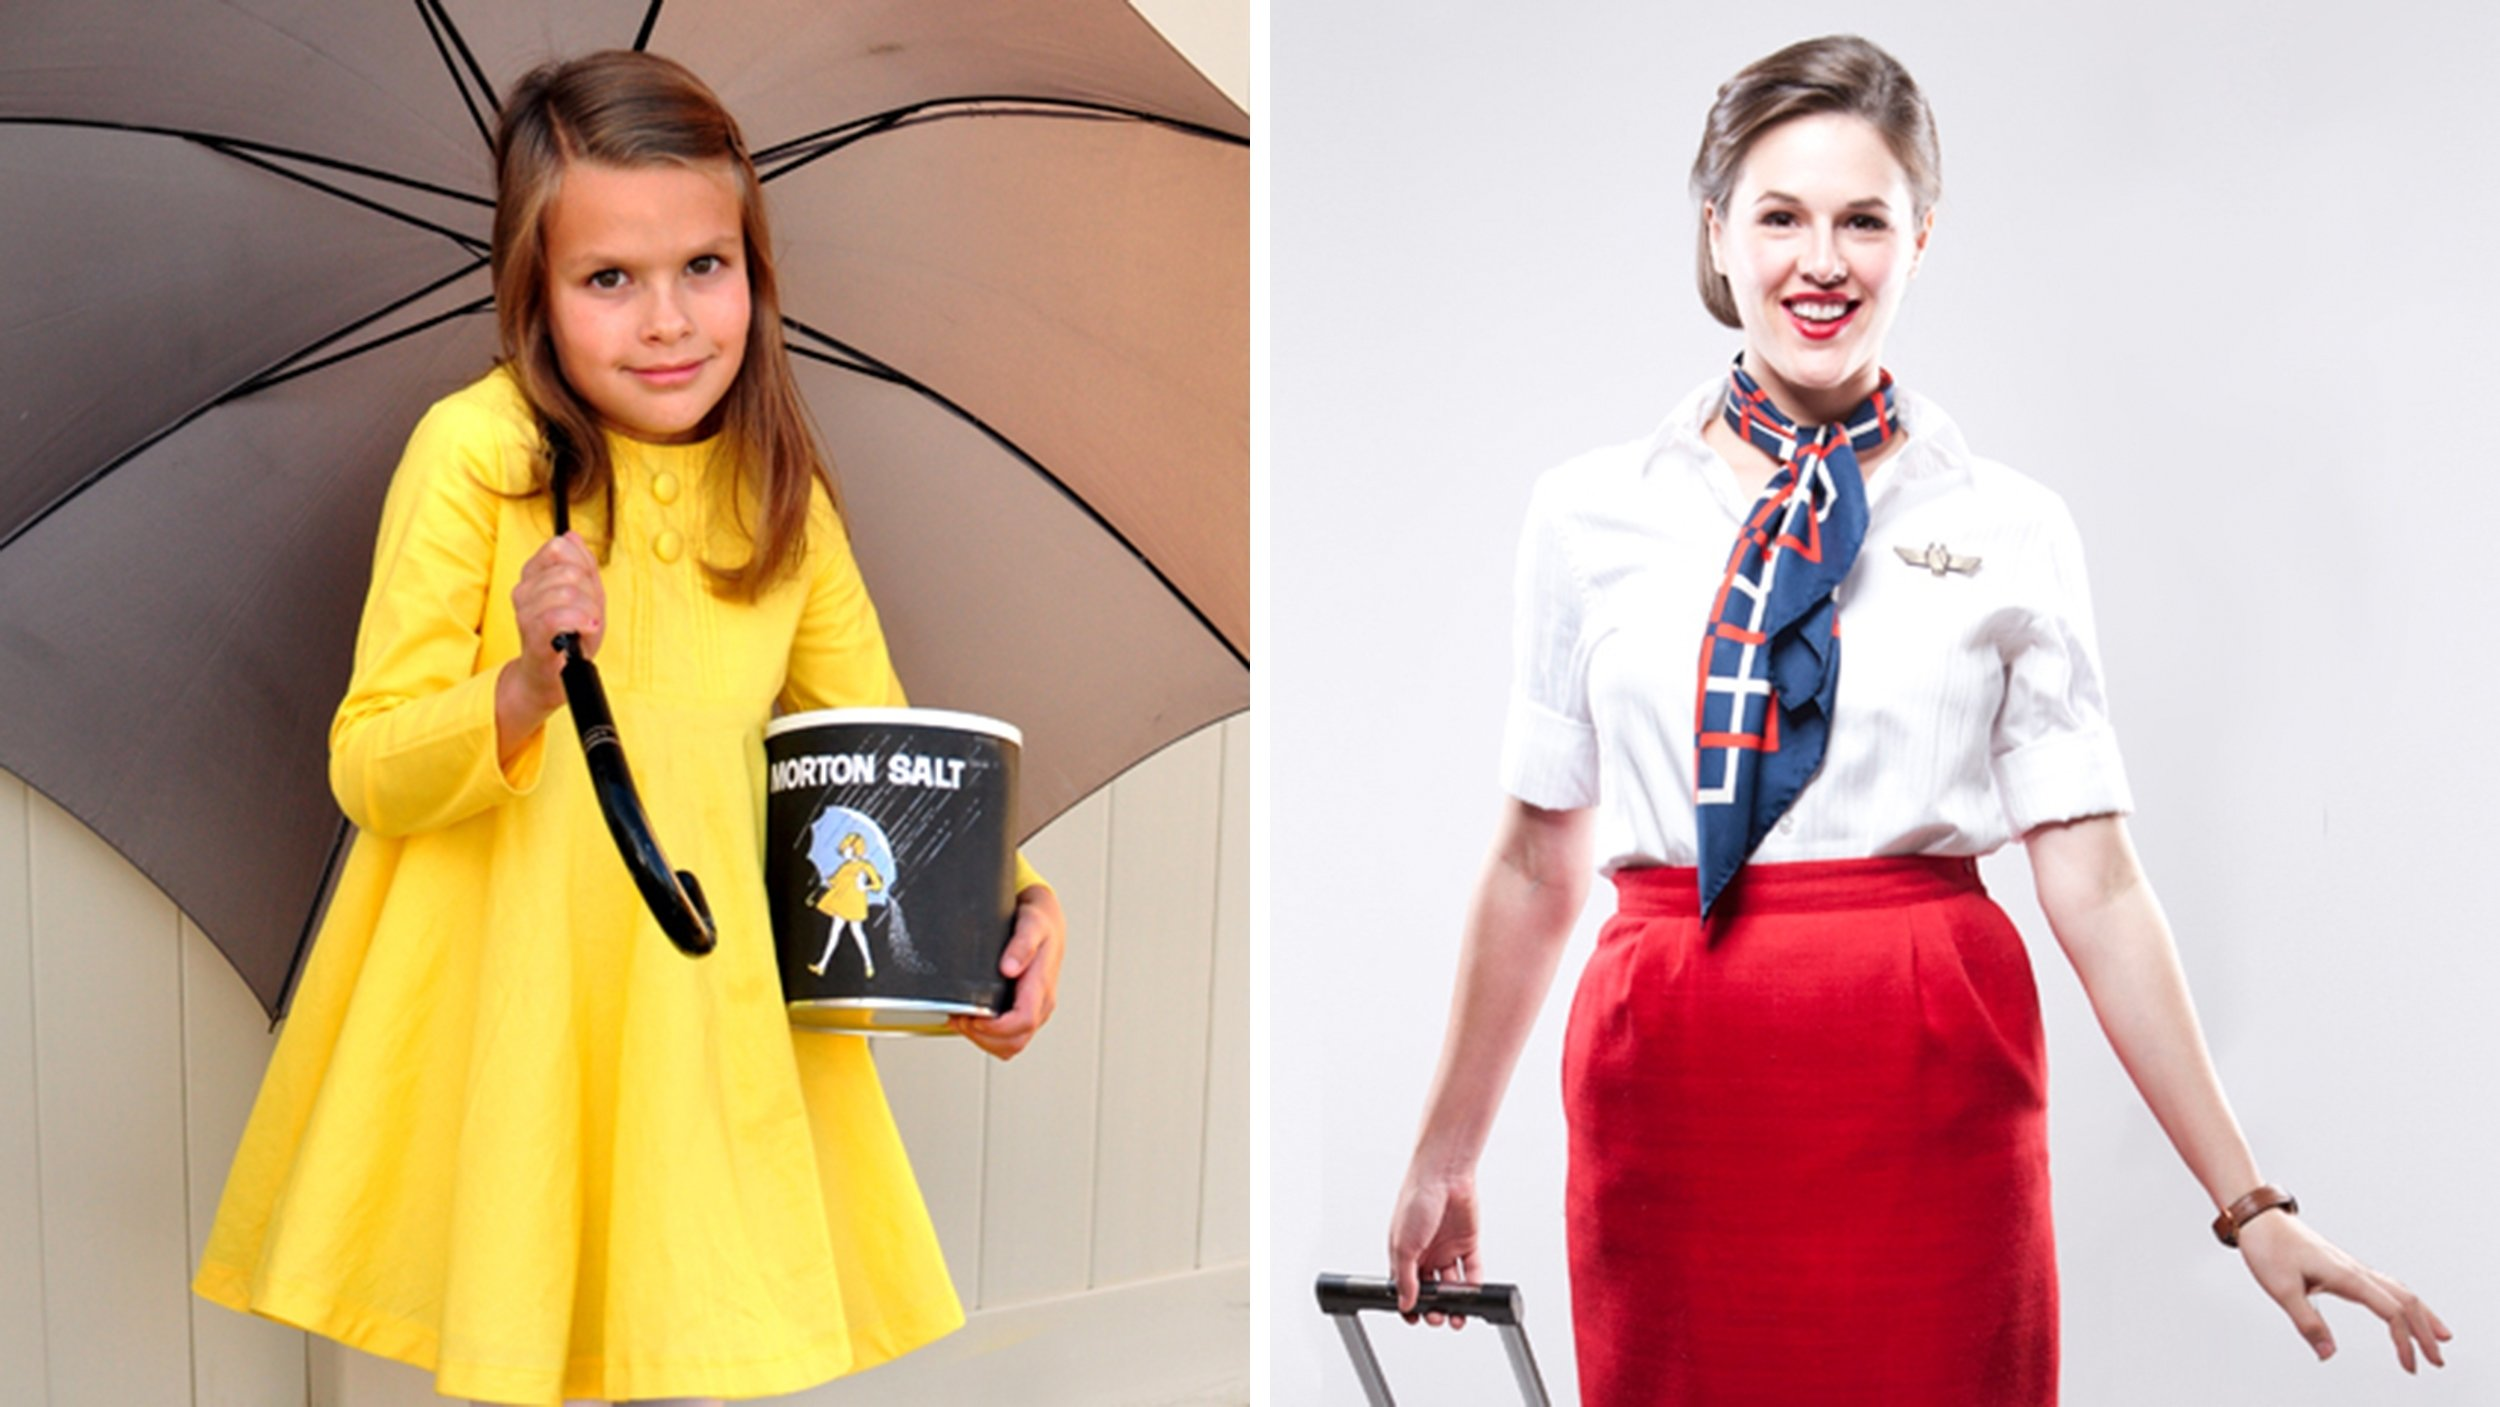 10 Cute Diy Women Halloween Costume Ideas last minute halloween diy costumes for busy parents today 8